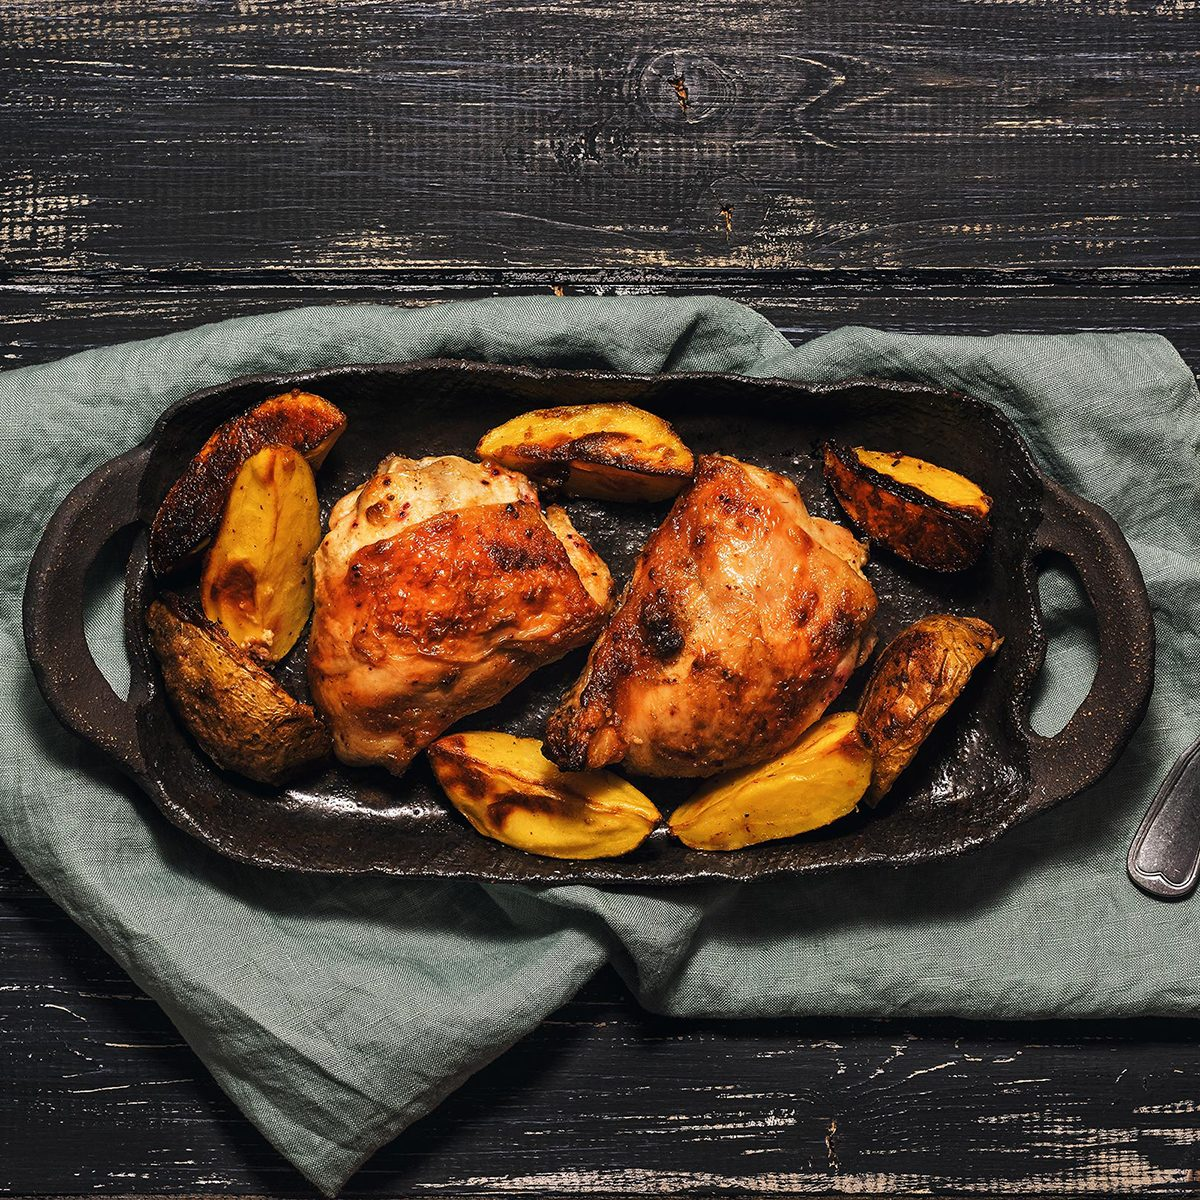 Chicken thigh baked with potatoes on a black dish.